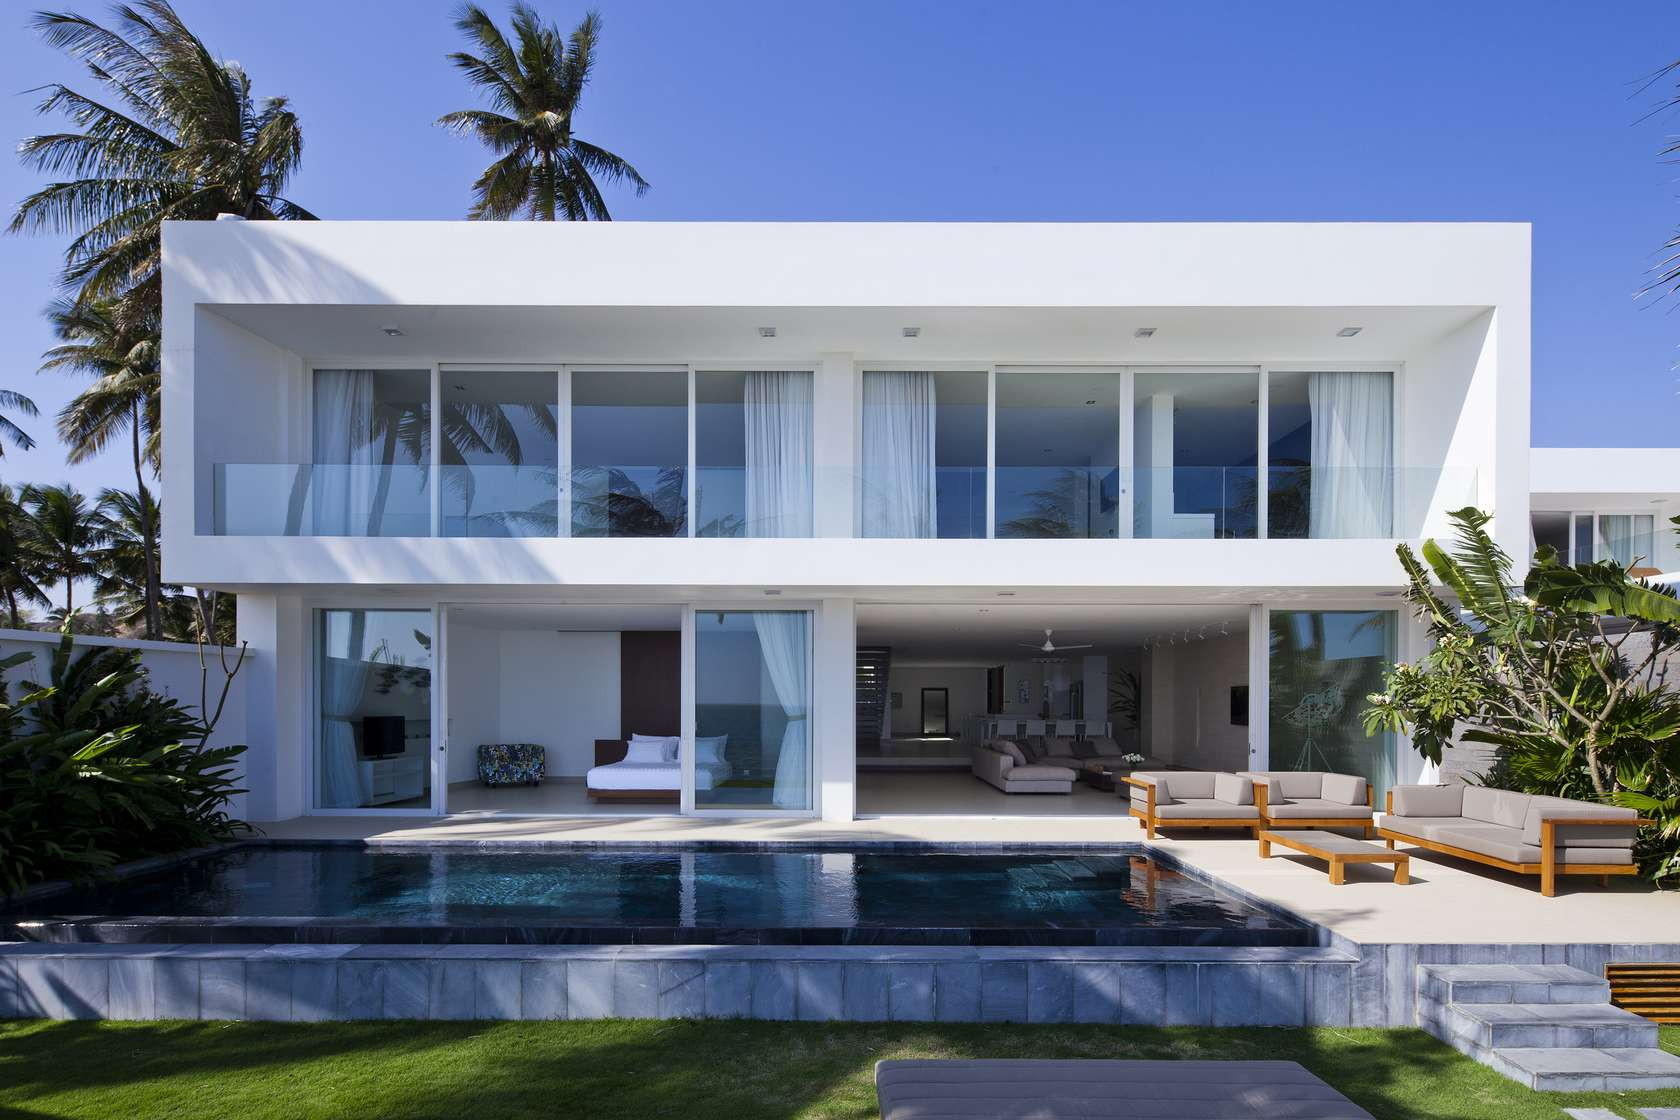 Private beach villas offer spectacular ocean views and for Modern beach house designs